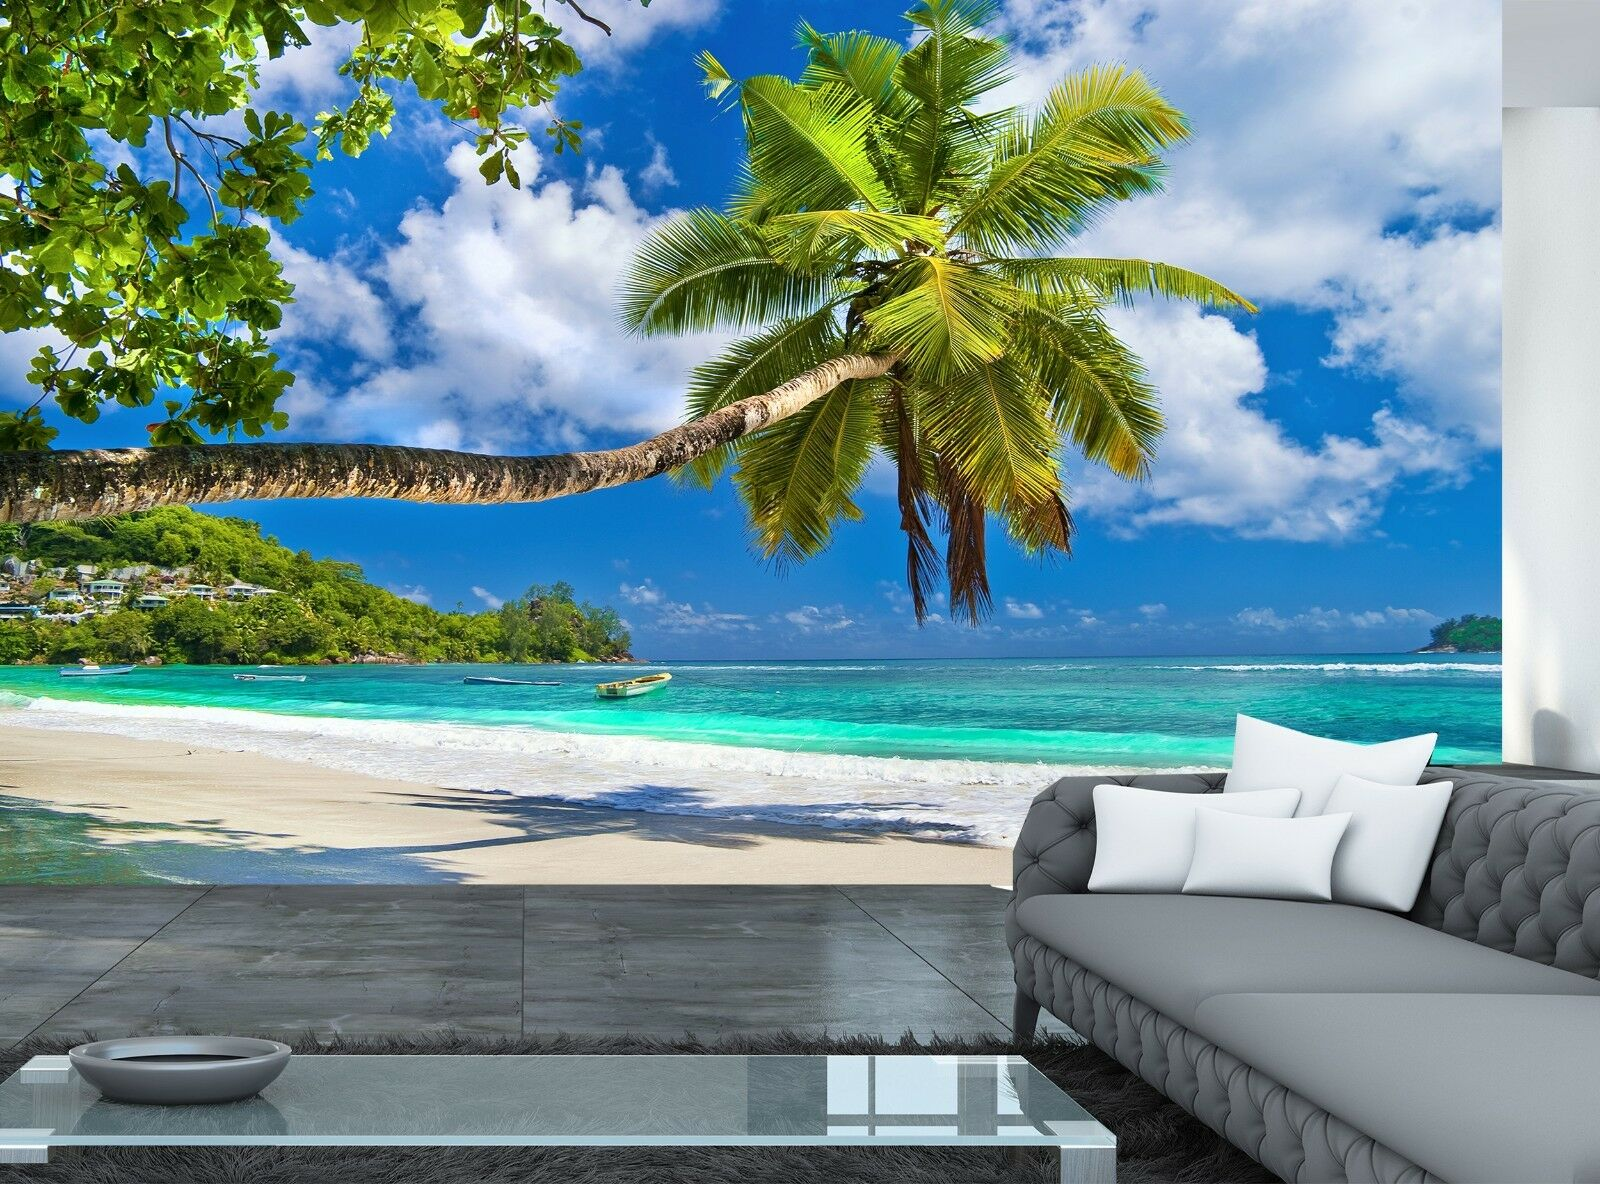 Seychelles Islands   Wall Mural Photo Wallpaper GIANT DECOR Paper Poster